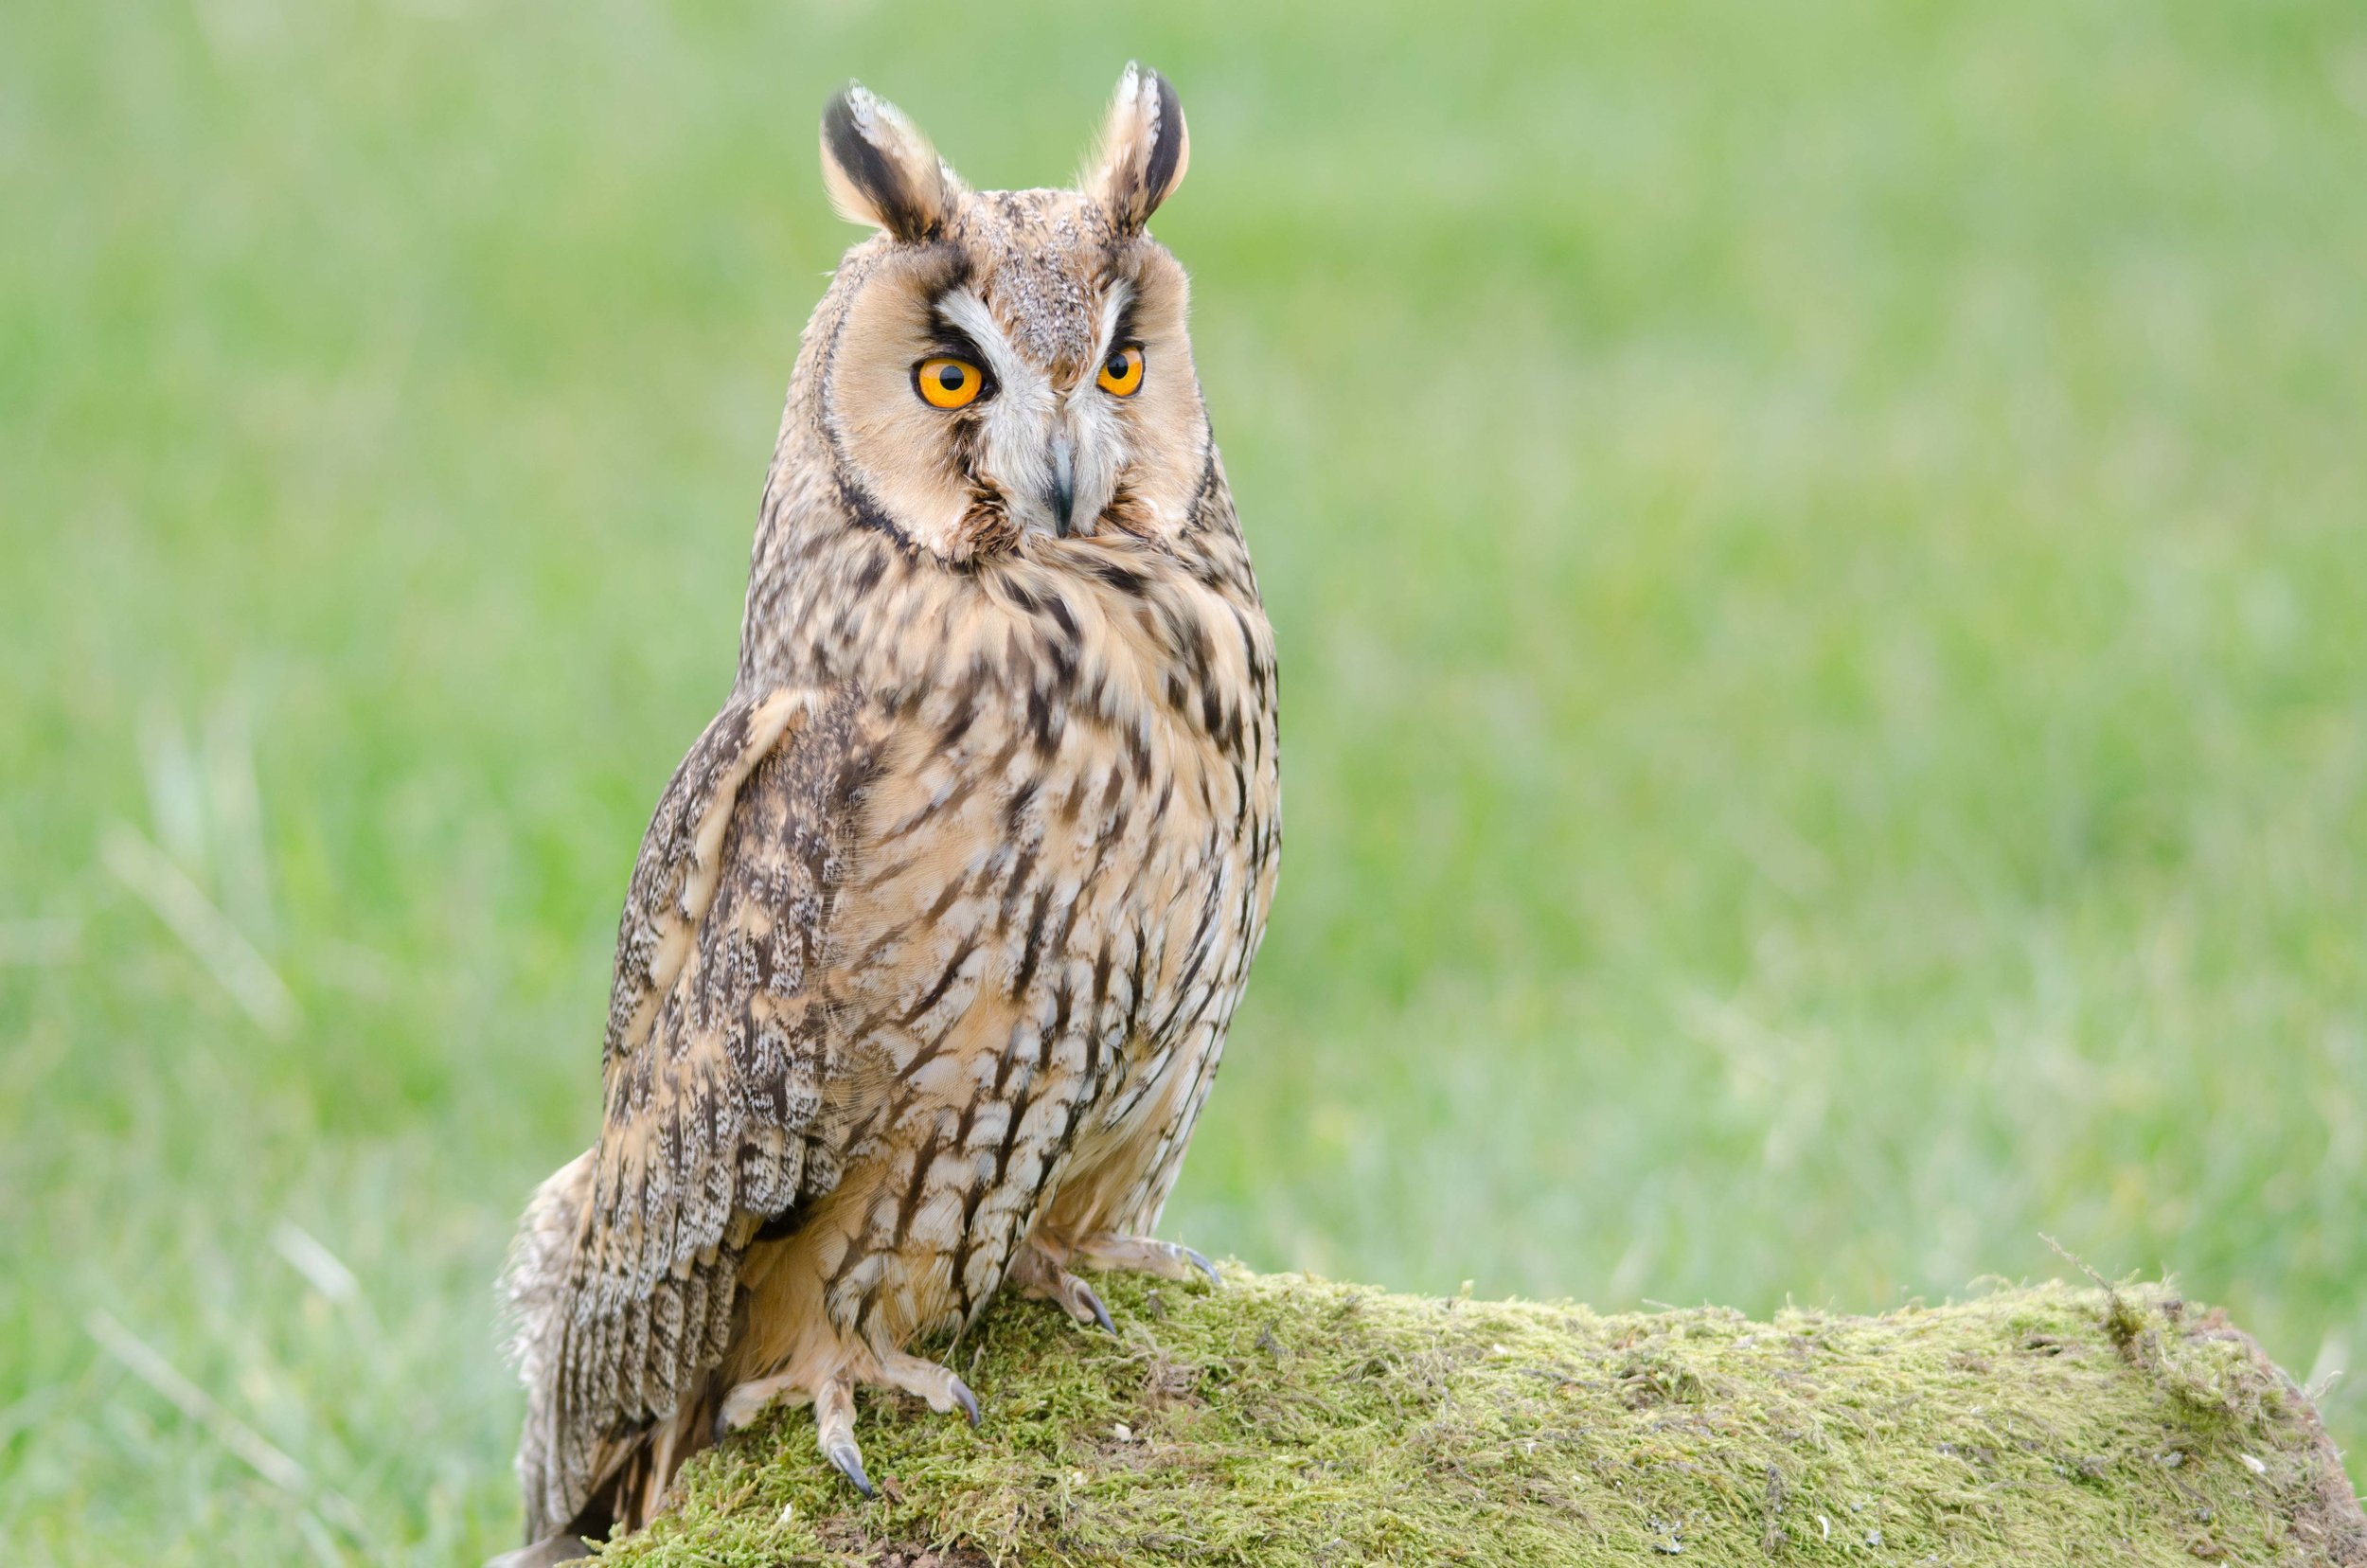 - Long-eared Owl (Asio otus)Long-eared Owls live in coniferous forests and other wooded areas. They weigh 7.8-15.3 oz. and have a wingspan is 35.4-39.4 in. Long-eared owls communicate by using musical hoots, single calls, shrieks, and physical displays. Long-eared owls eat voles, mice, shrews, small birds, small snakes, and insects. They are protected on the US Migratory Bird lists.Photo Credits: Darrel Birkett